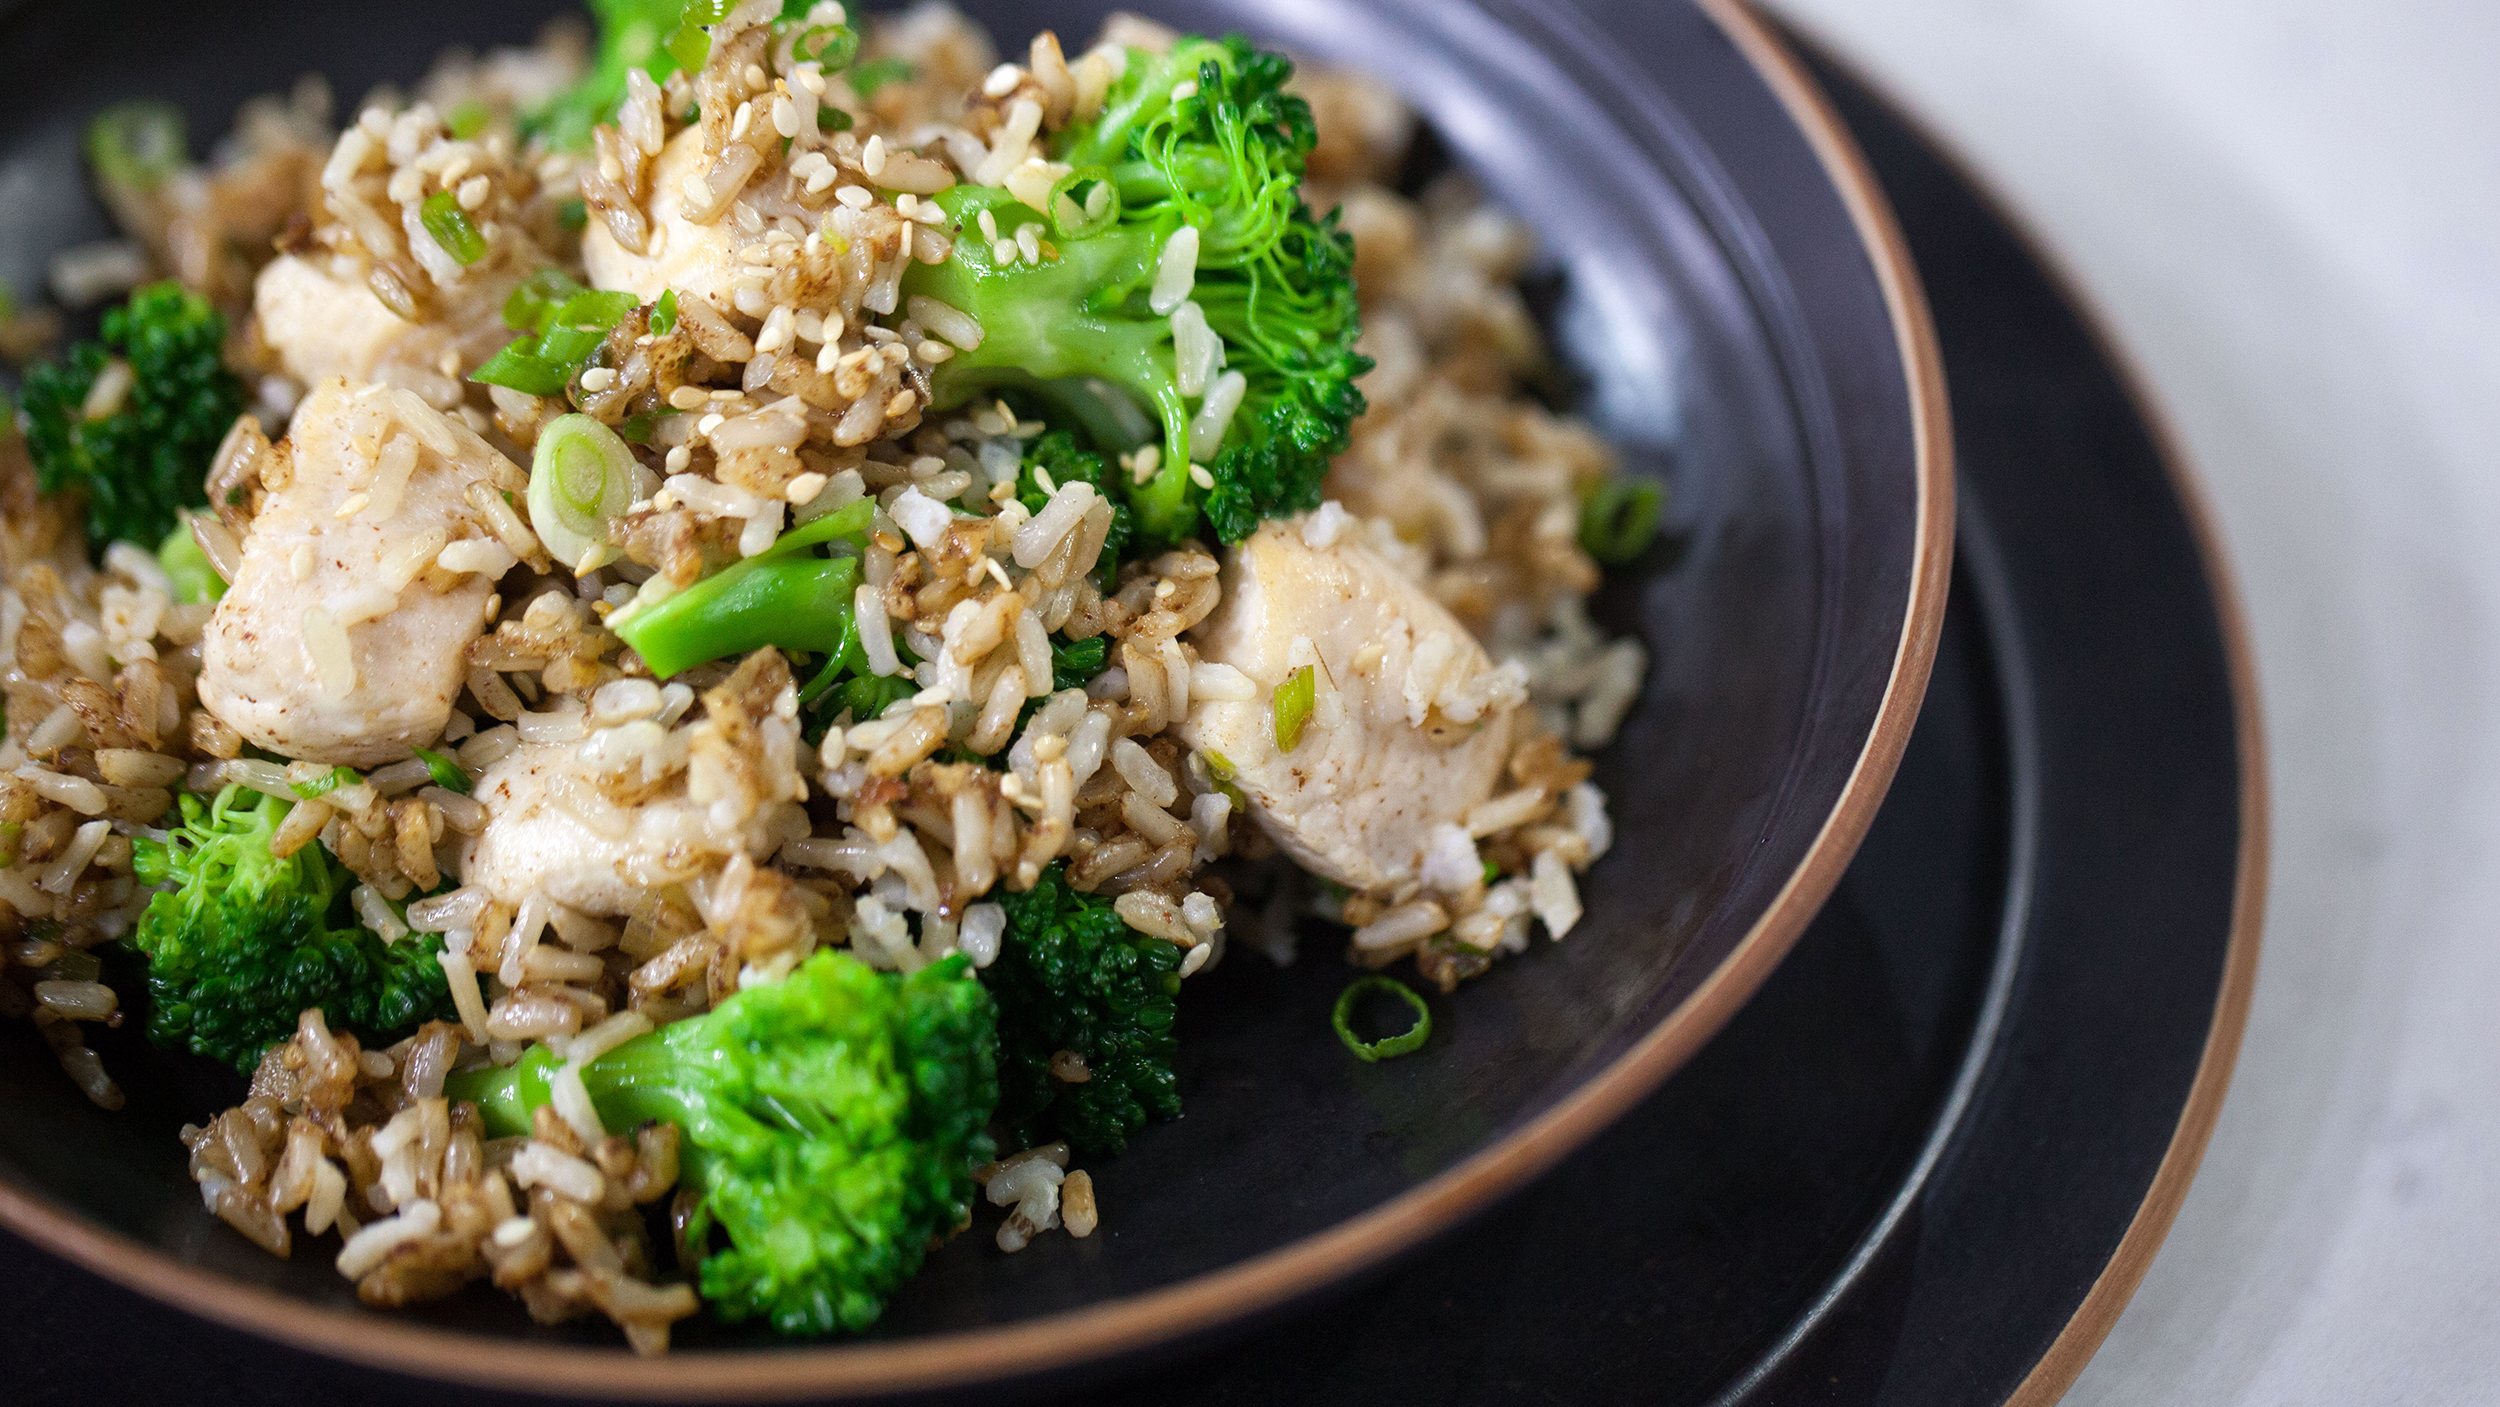 Restaurant-Style Asian-Inspired Chicken & Broccoli - TODAY.com